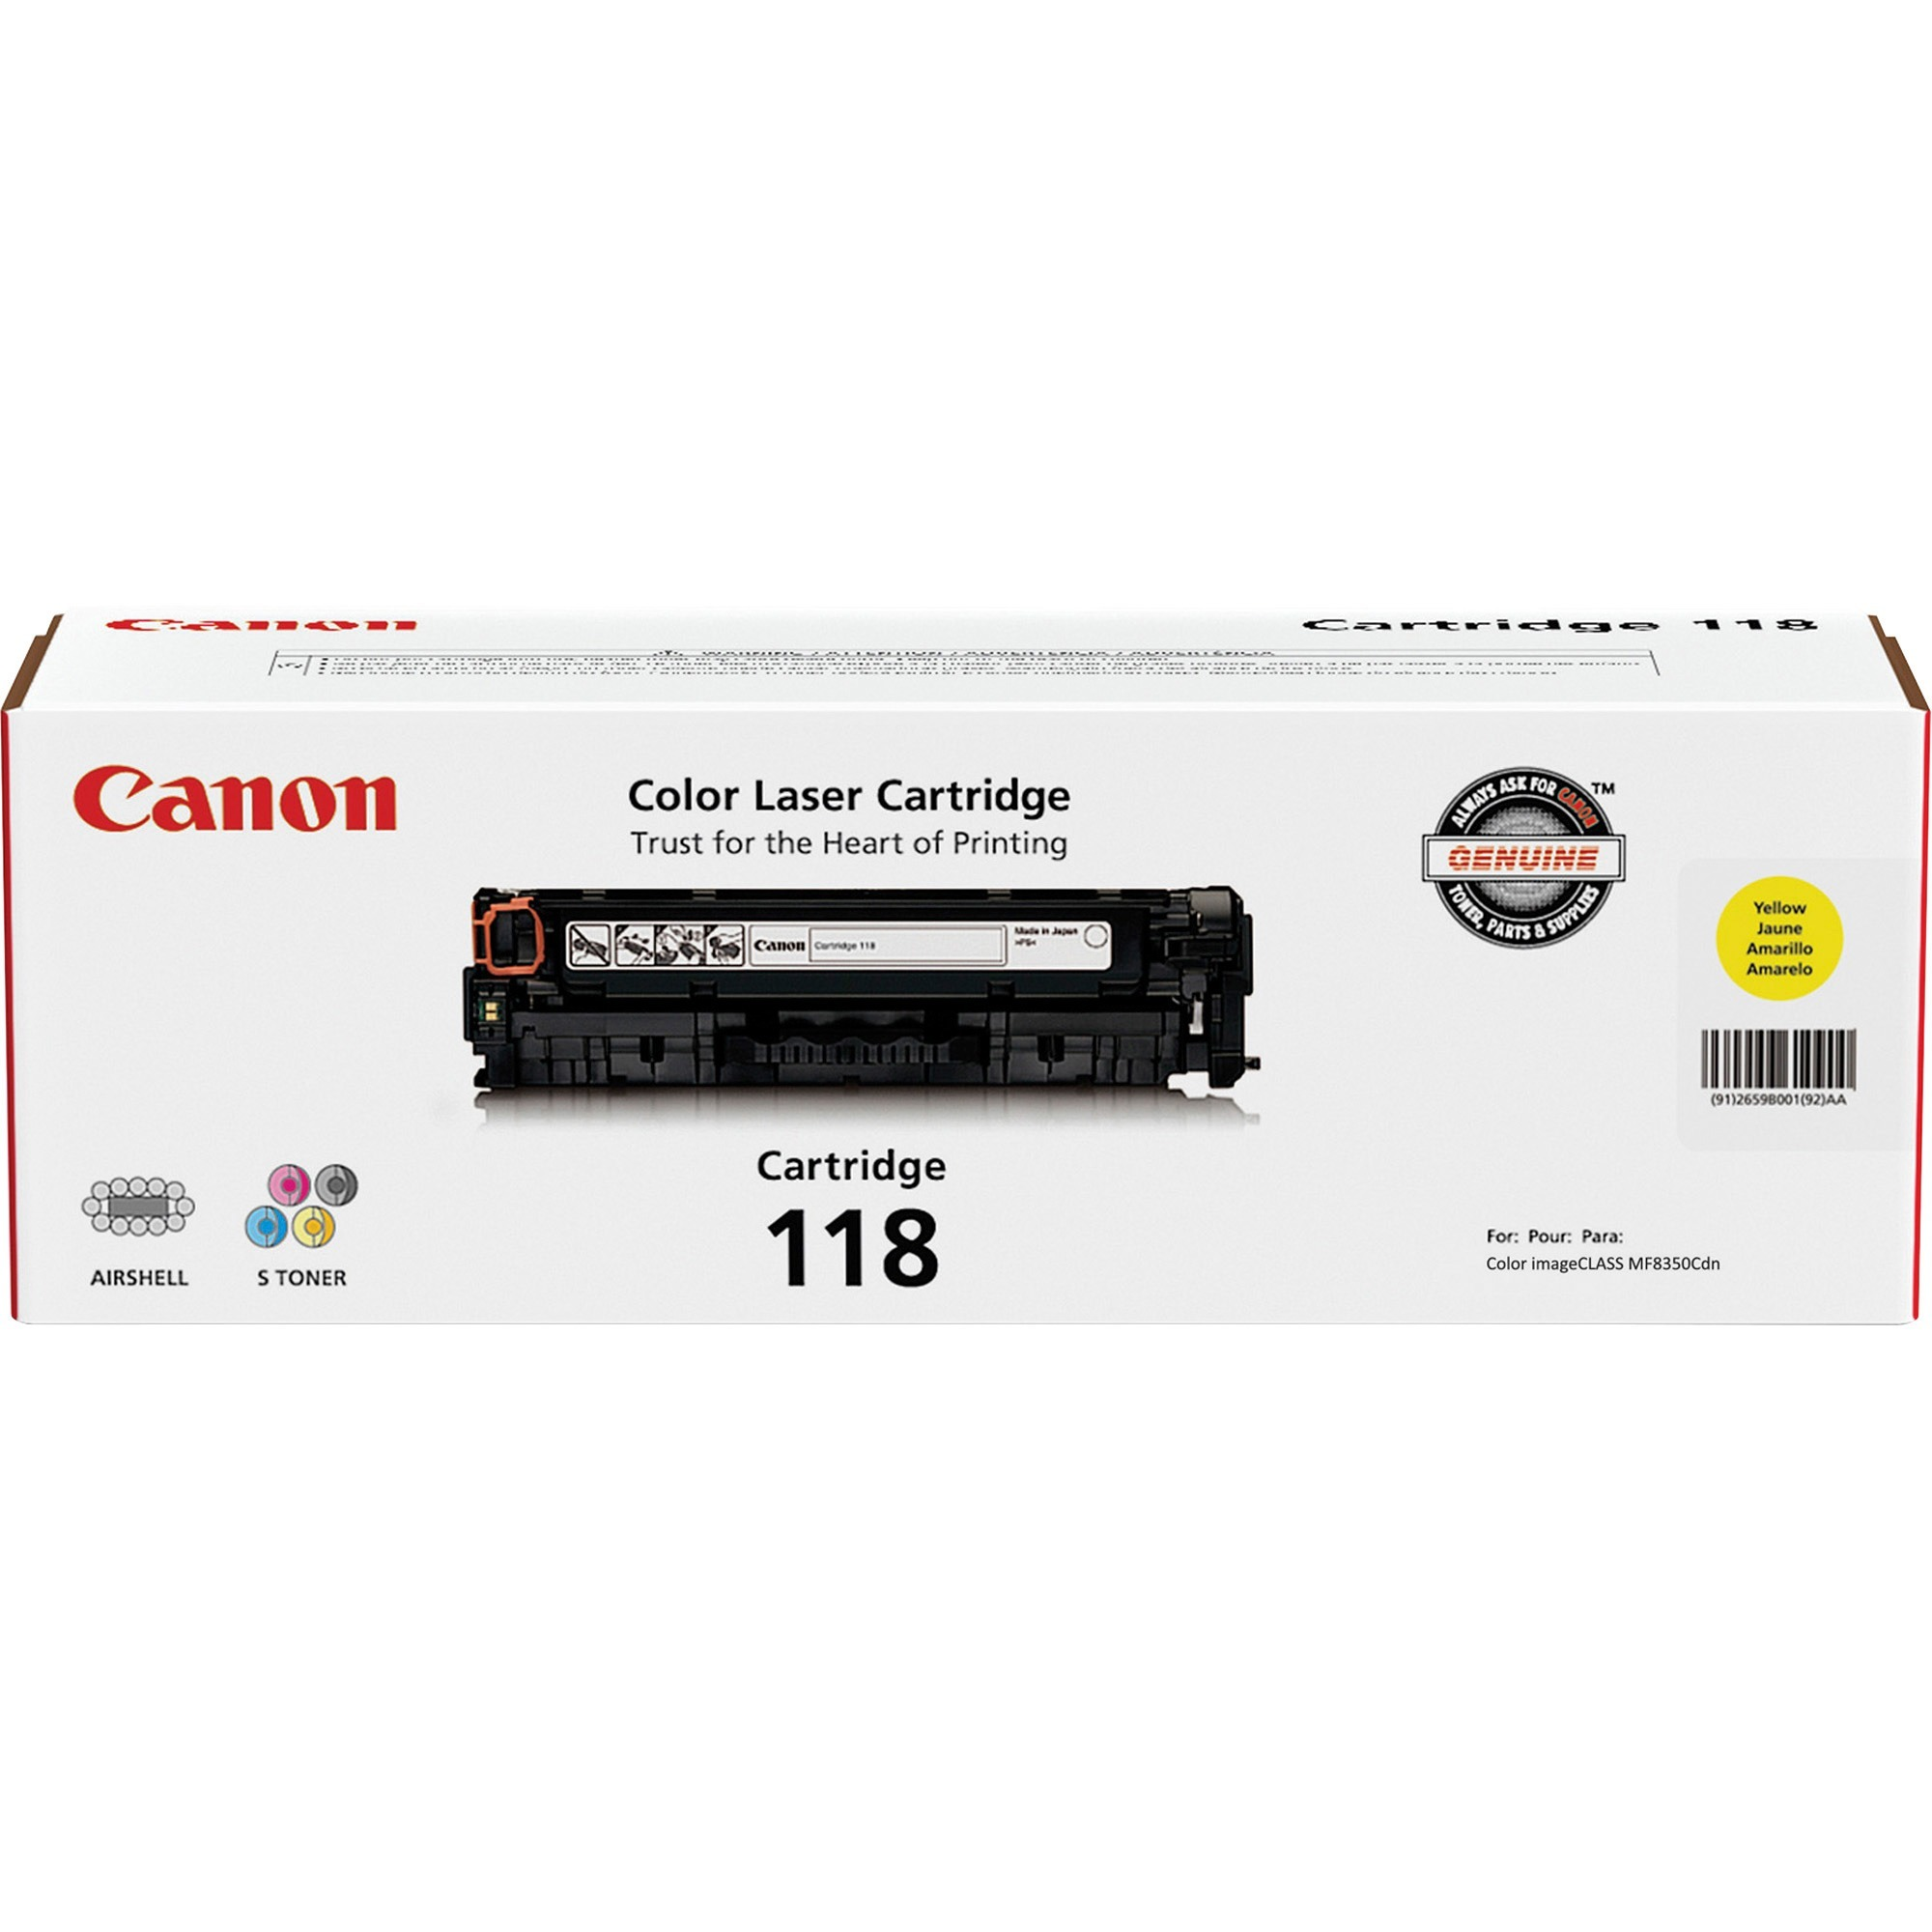 Canon, CNMCRTDG118YW, CRTDG118 Toner Cartridge, 1 Each